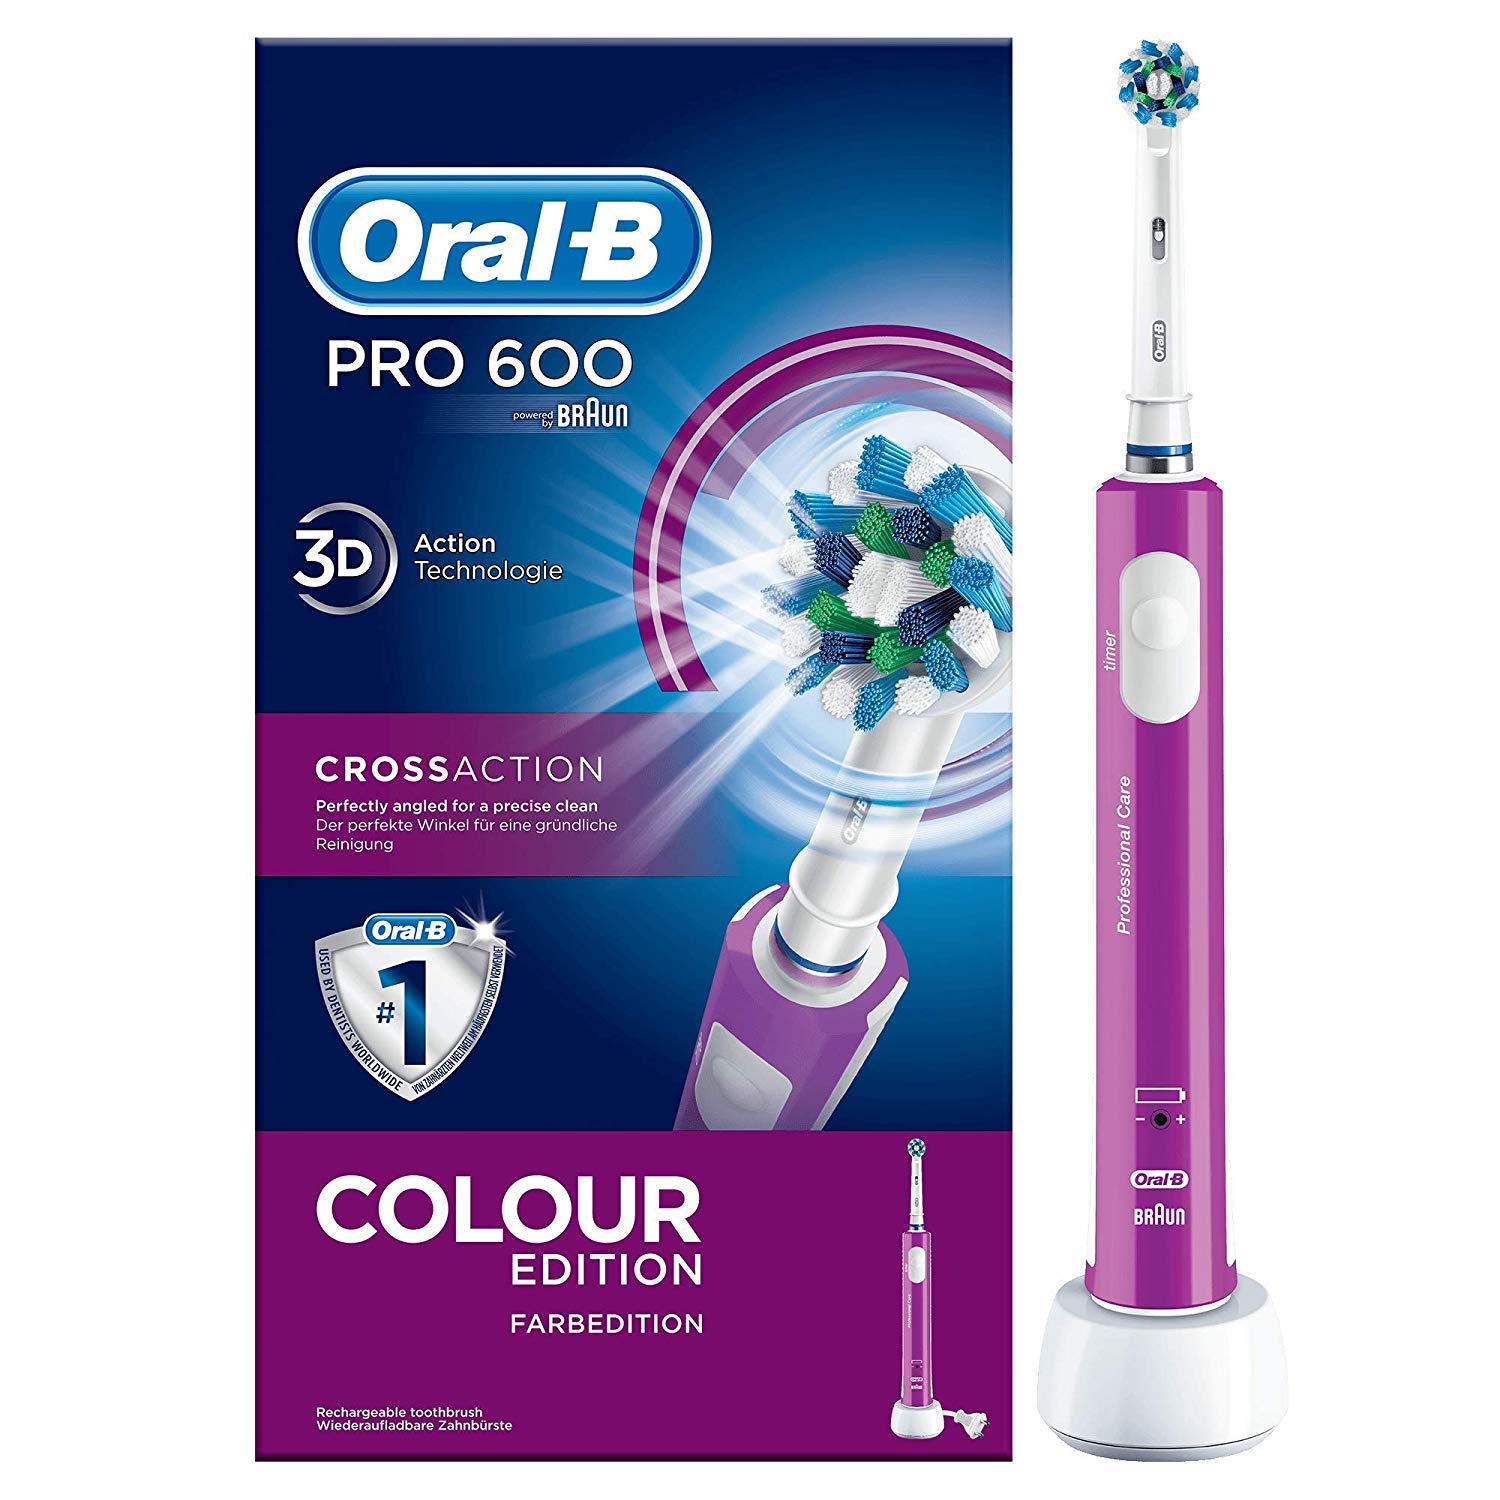 Oral-B-PRO-600-CrossAction.jpg